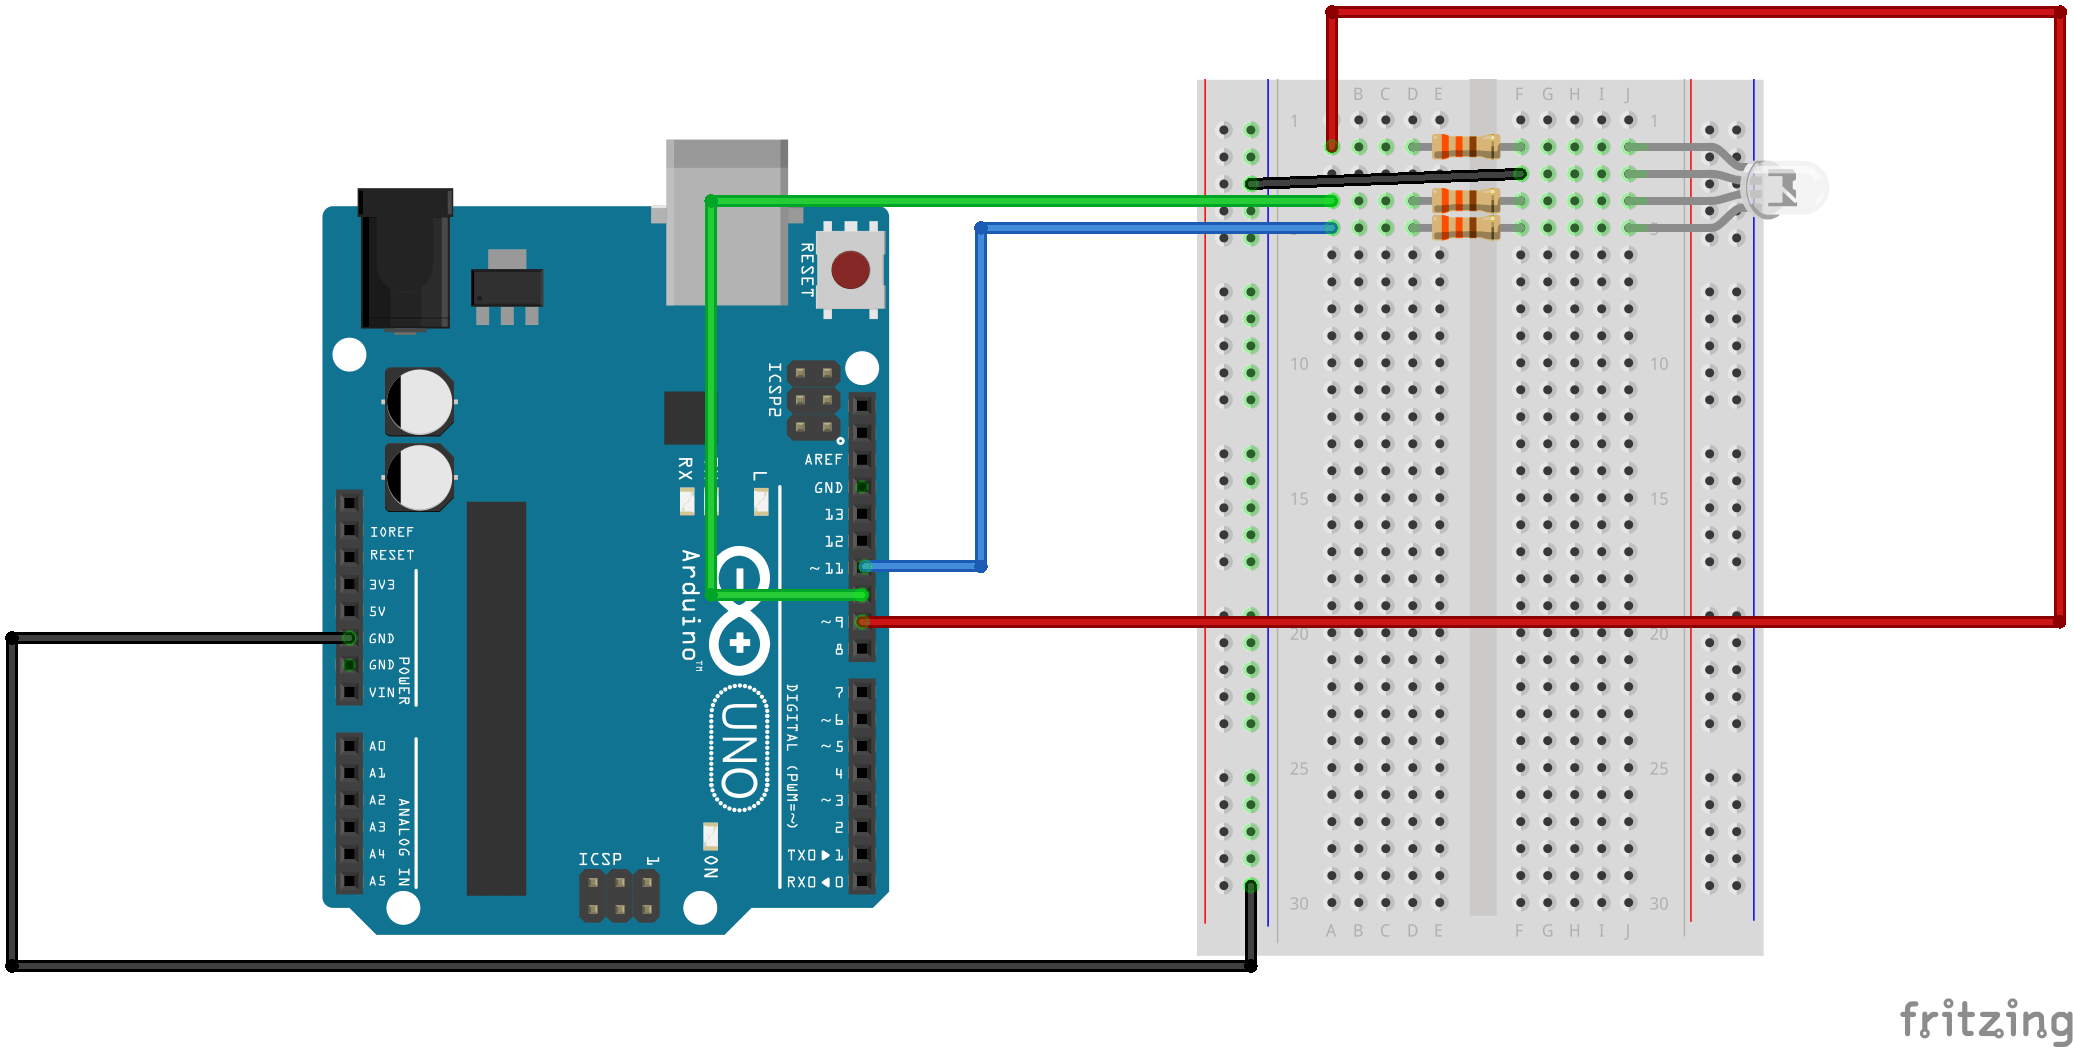 led wiring diagrams duncan designed sik experiment guide for arduino v3 2 learn sparkfun